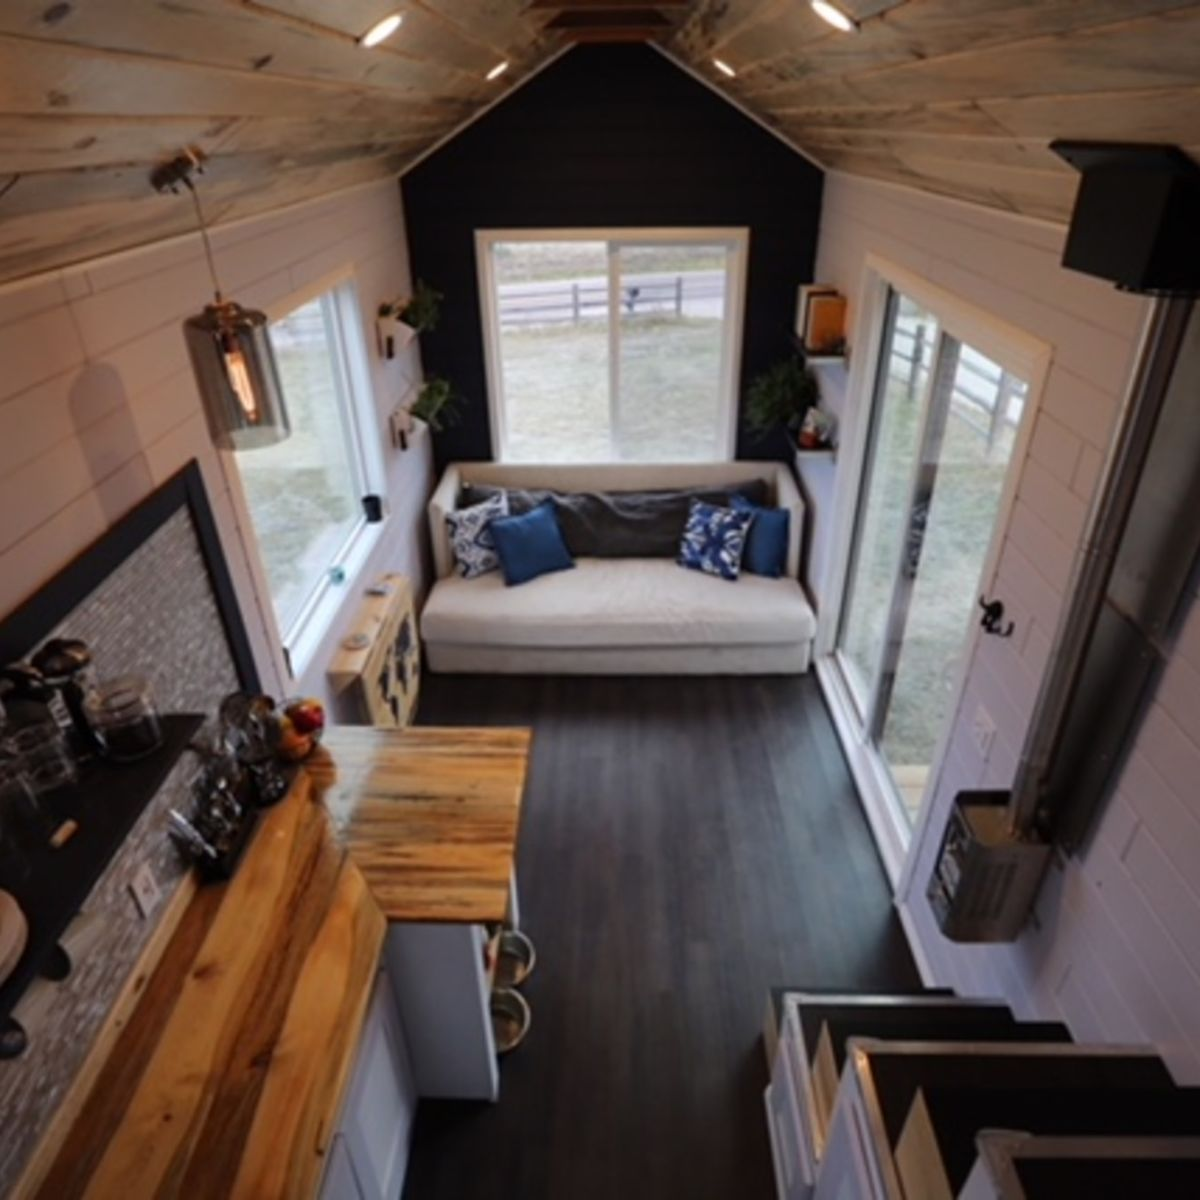 Springs Tiny House - Tiny House for Sale in Colorado Springs, Colorado -  Tiny House Listings